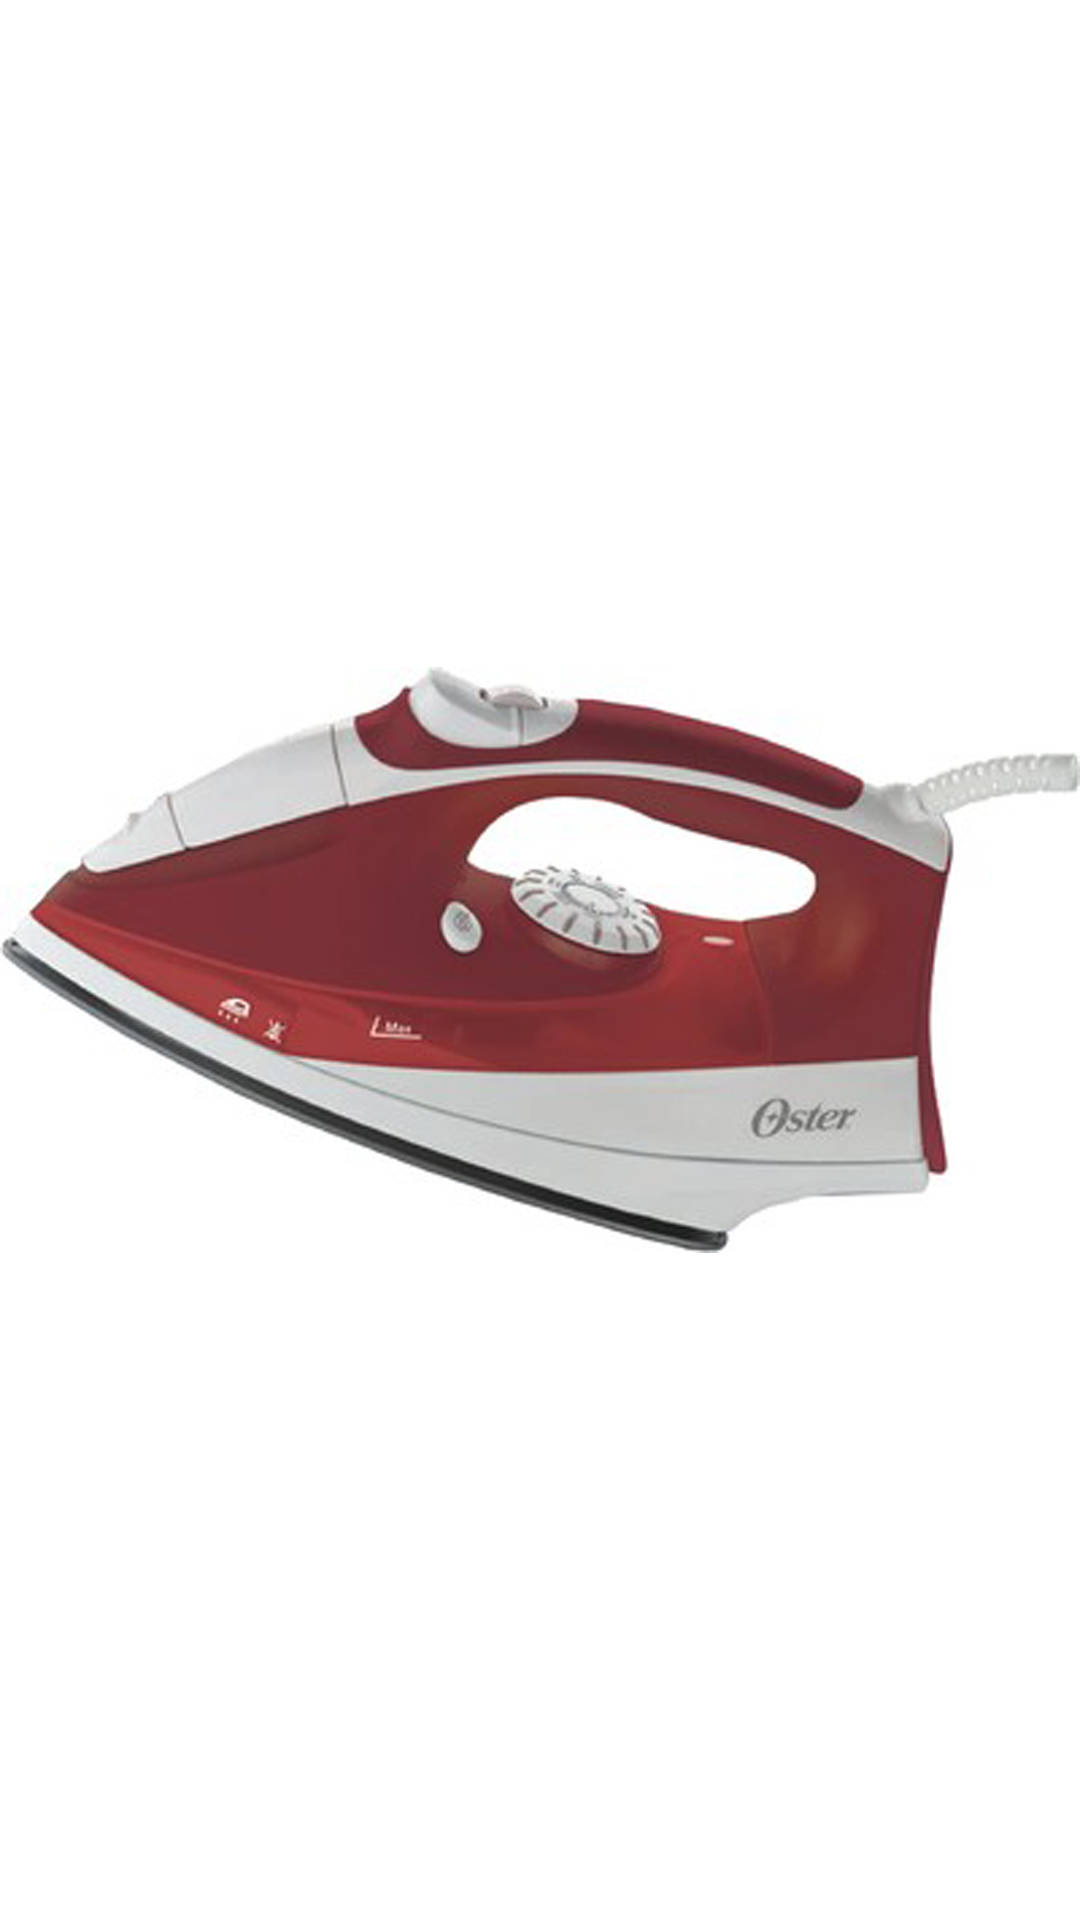 Oster 6101 2400 W Steam Iron Image